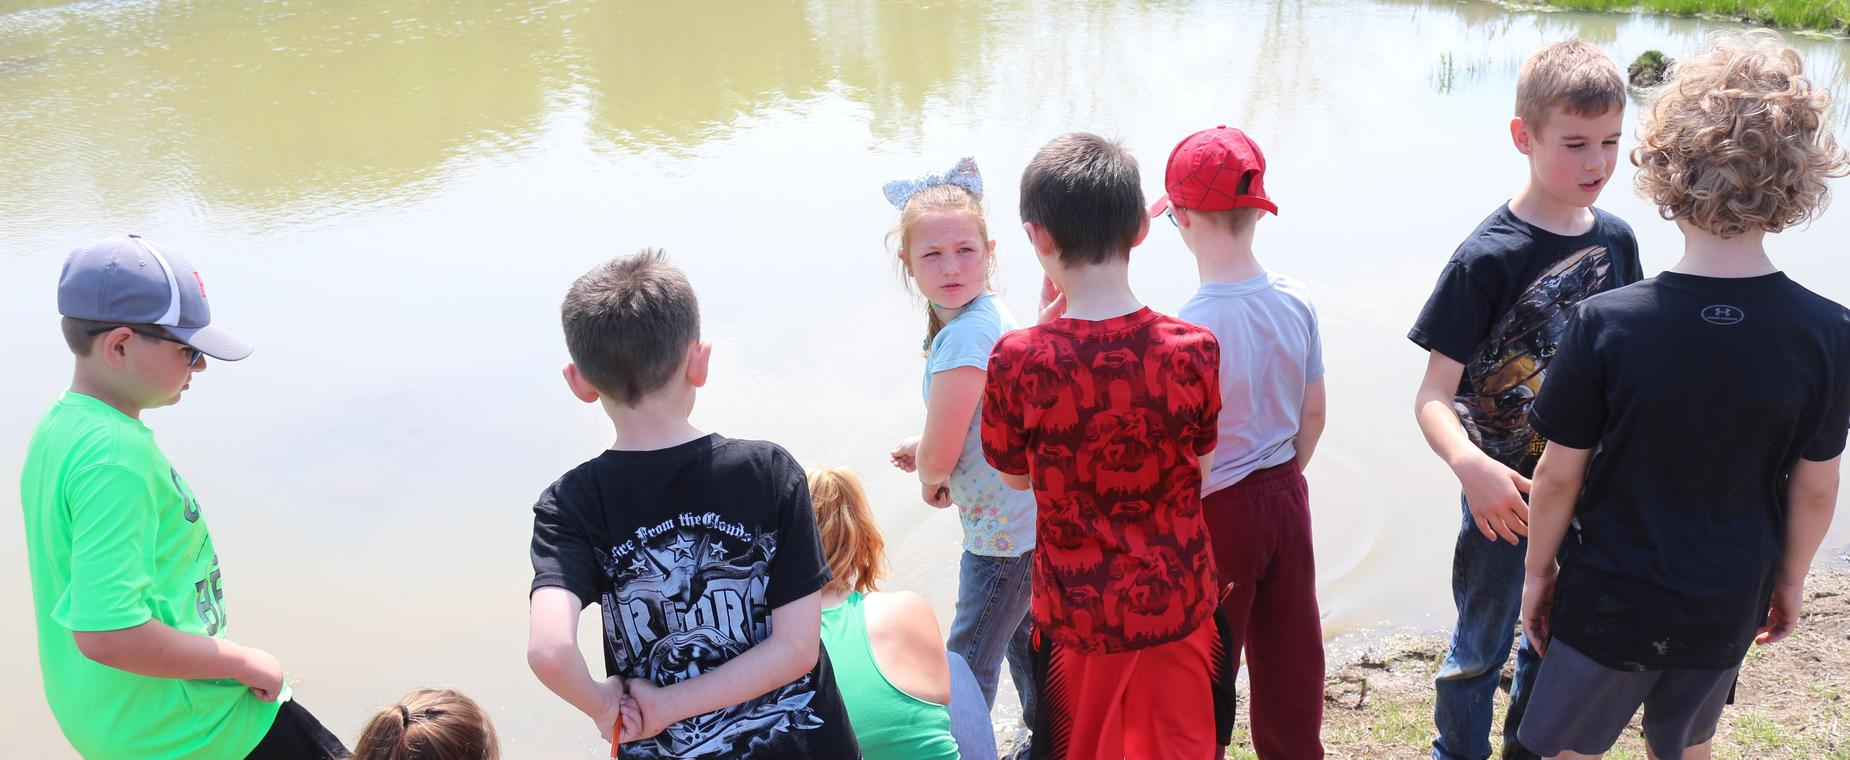 Students learning about biodiversity at Muddy Paws Marsh